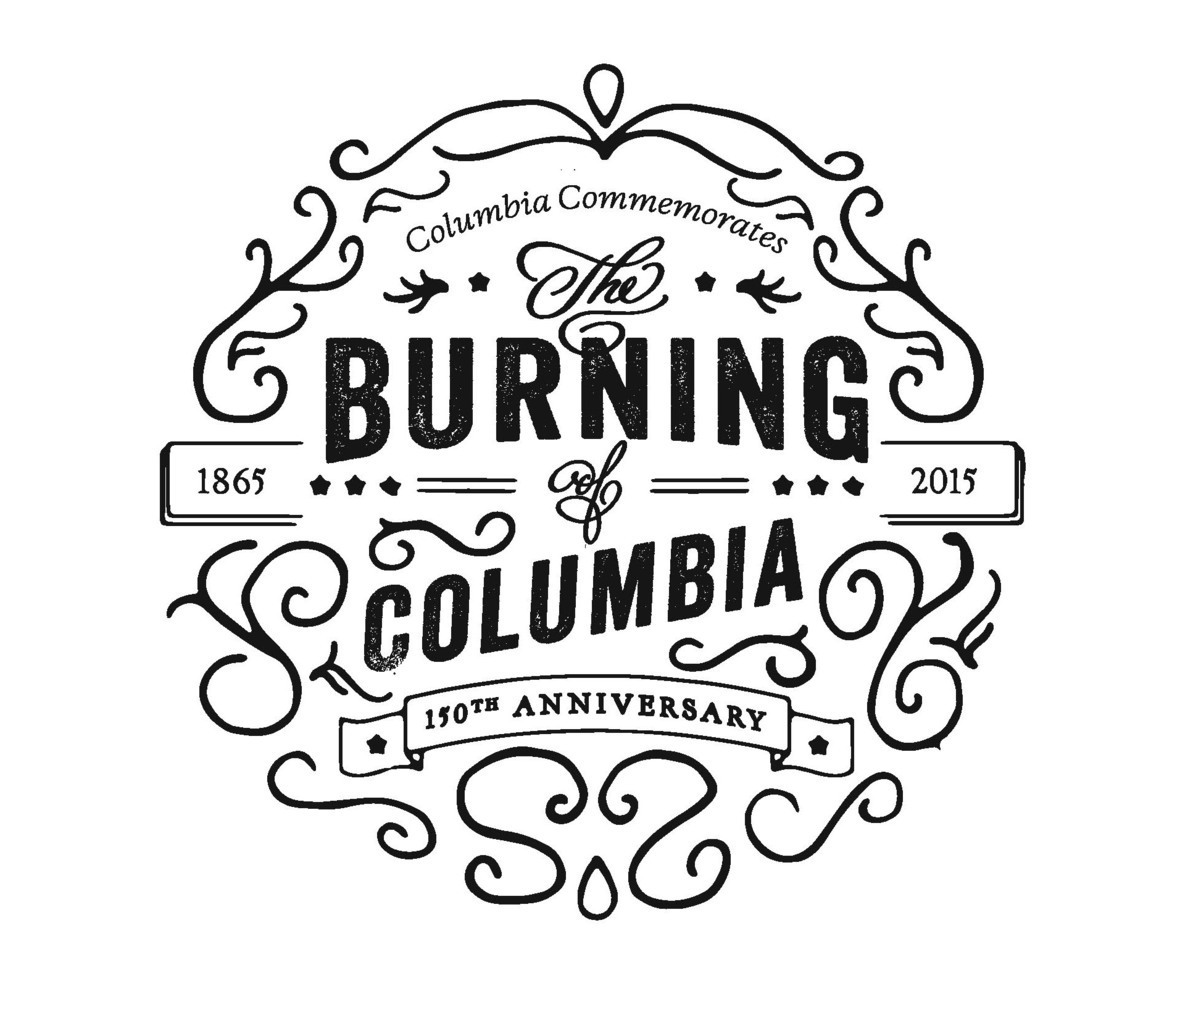 Burning of Columbia Logo